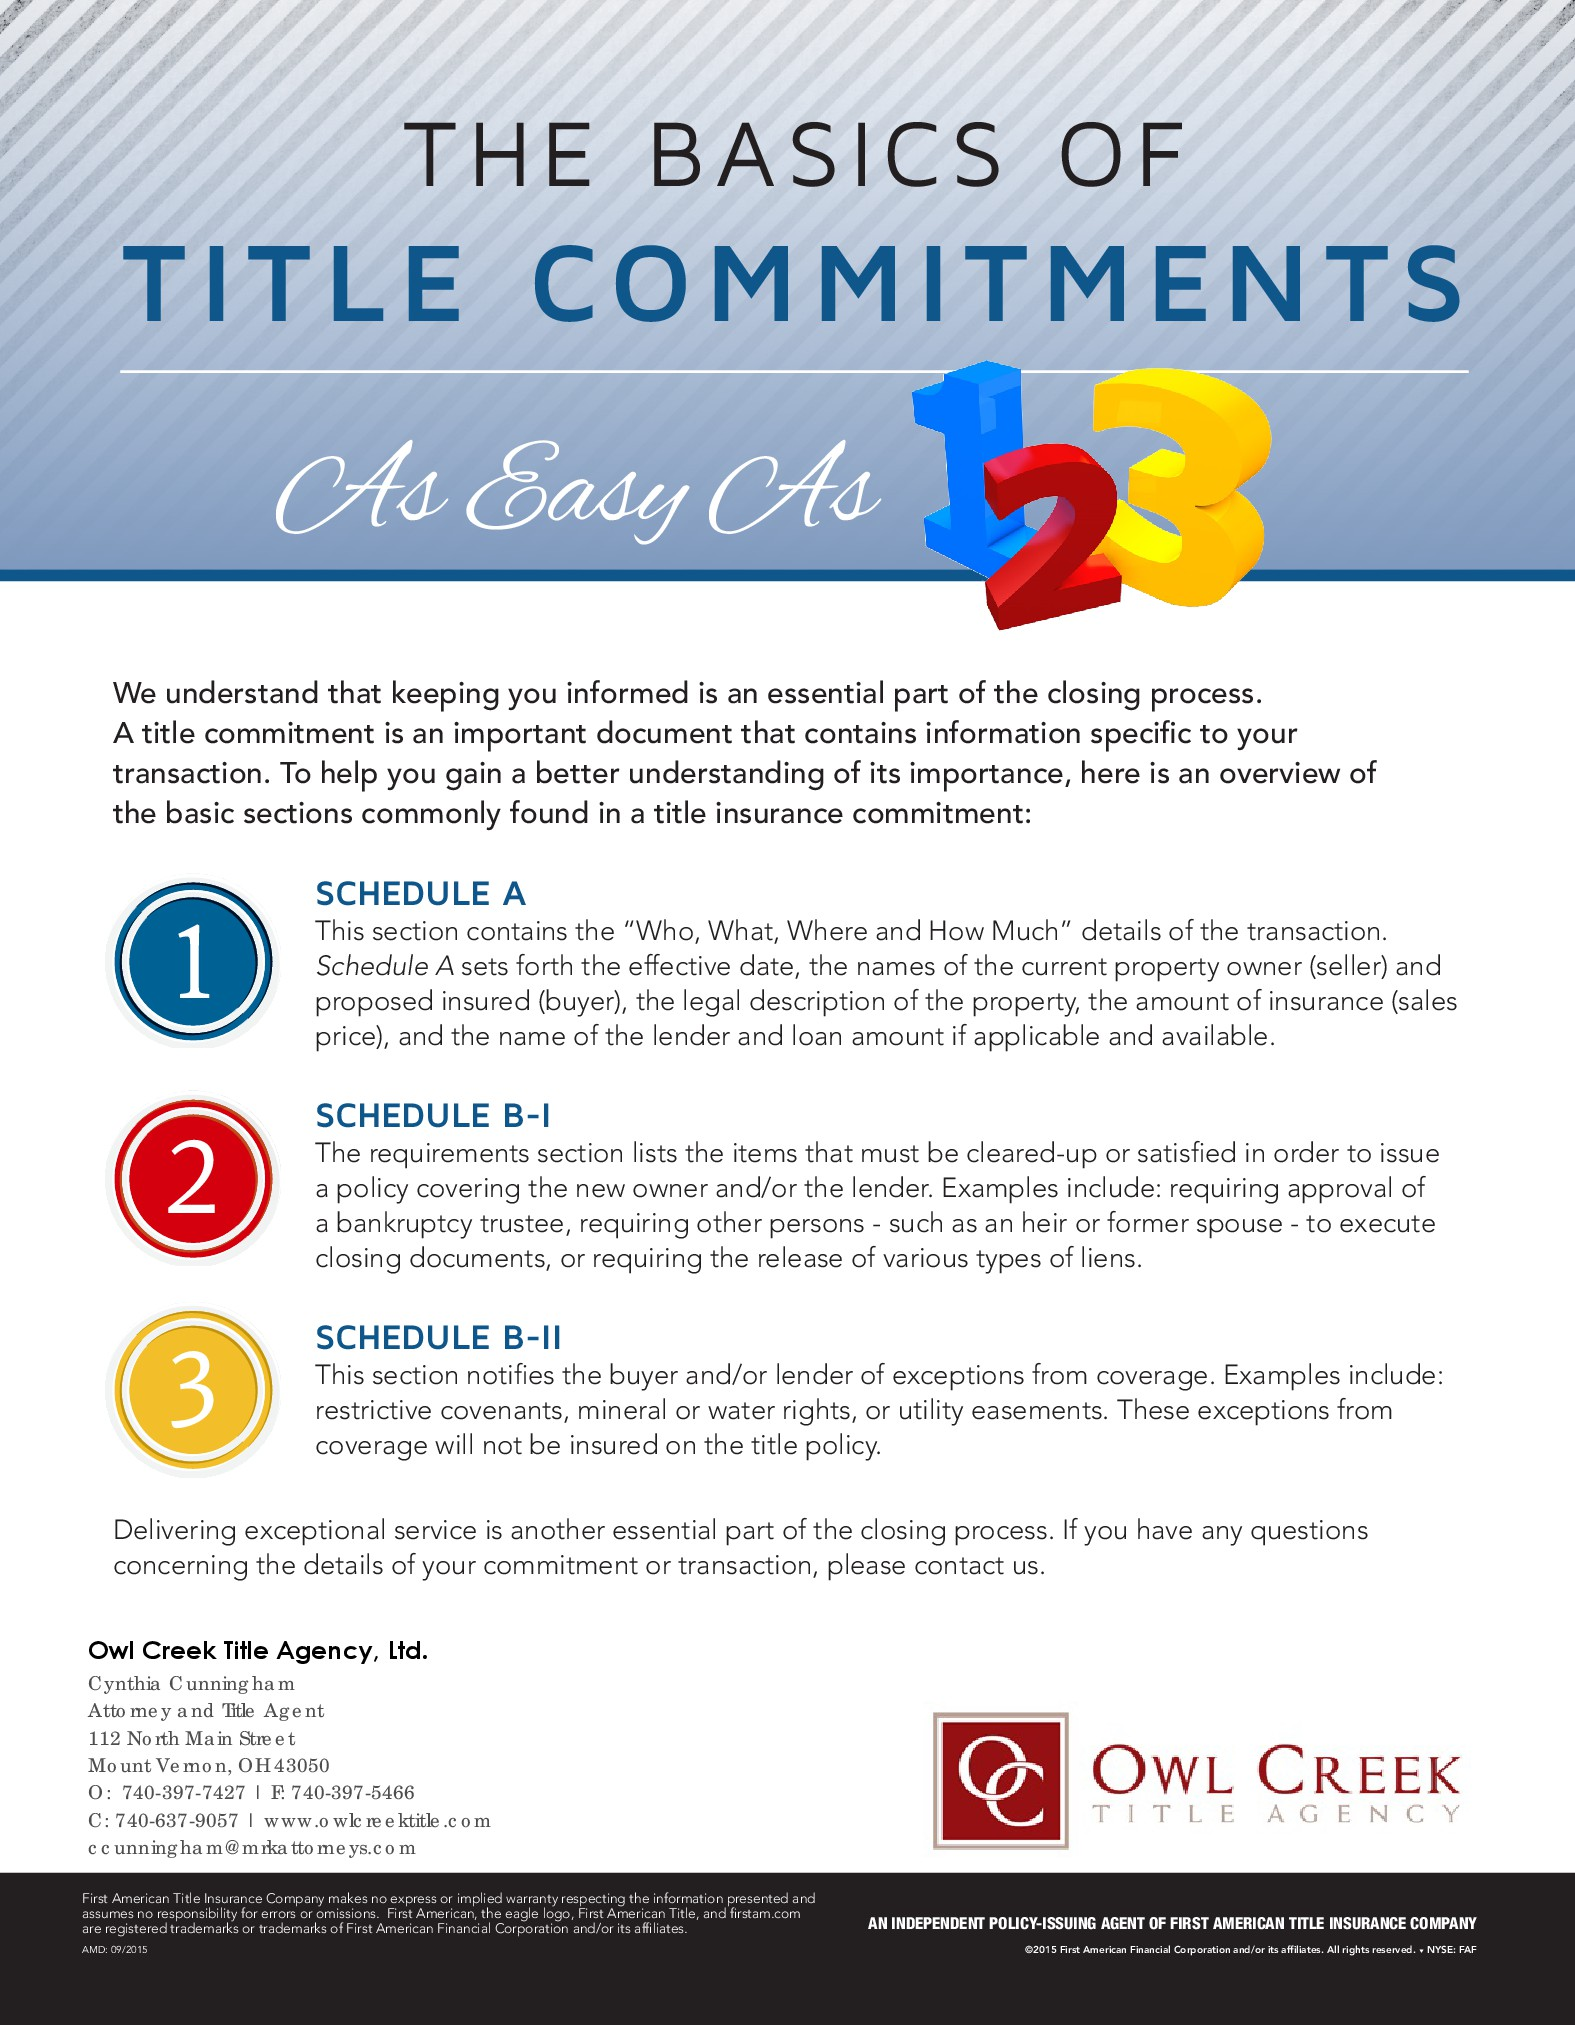 The Basics of Title Commitments